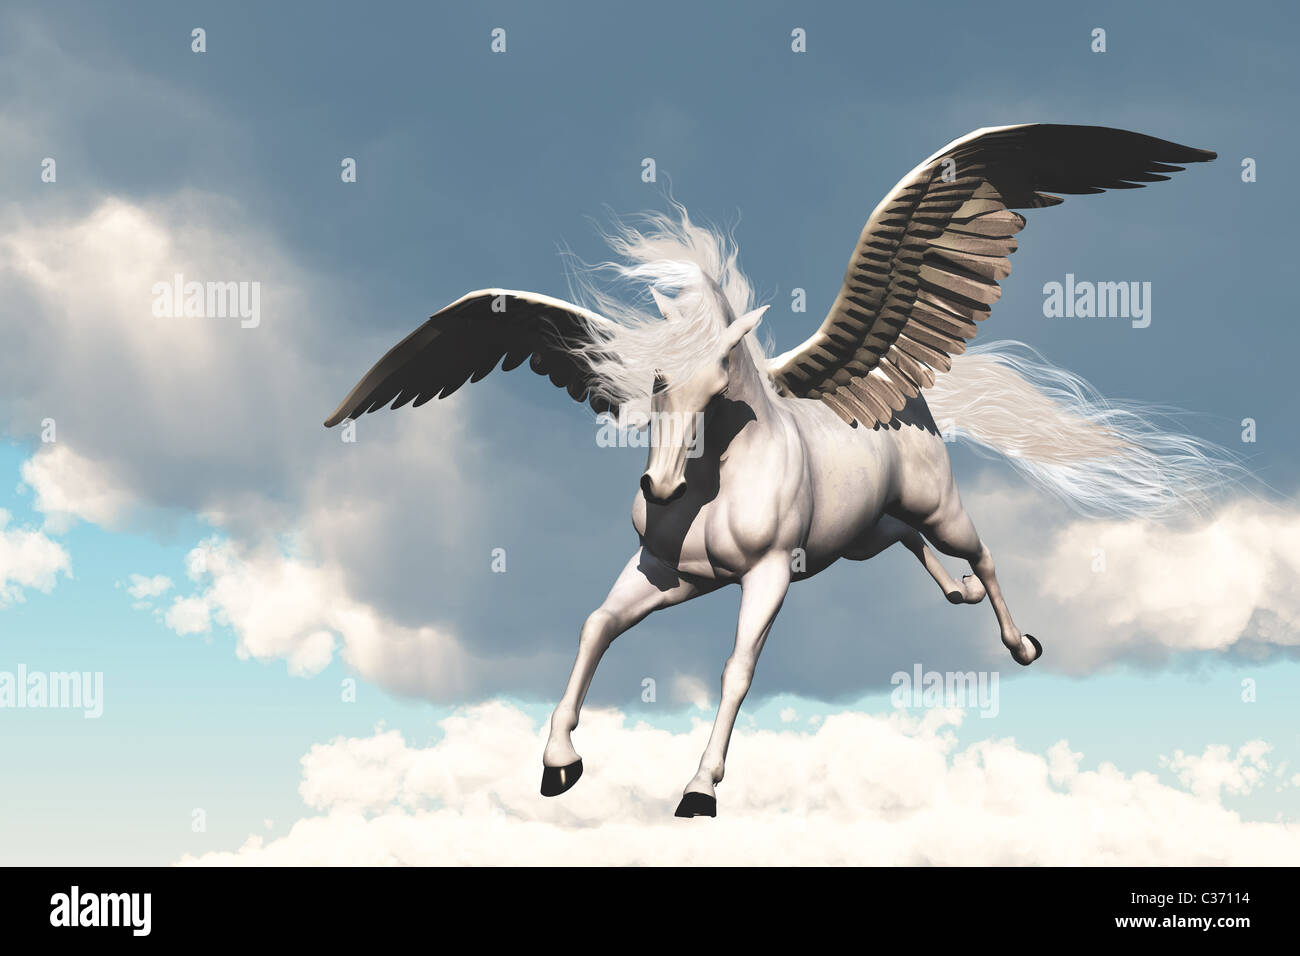 The creature of ancient fable and myth, a beautiful flying white horse. - Stock Image